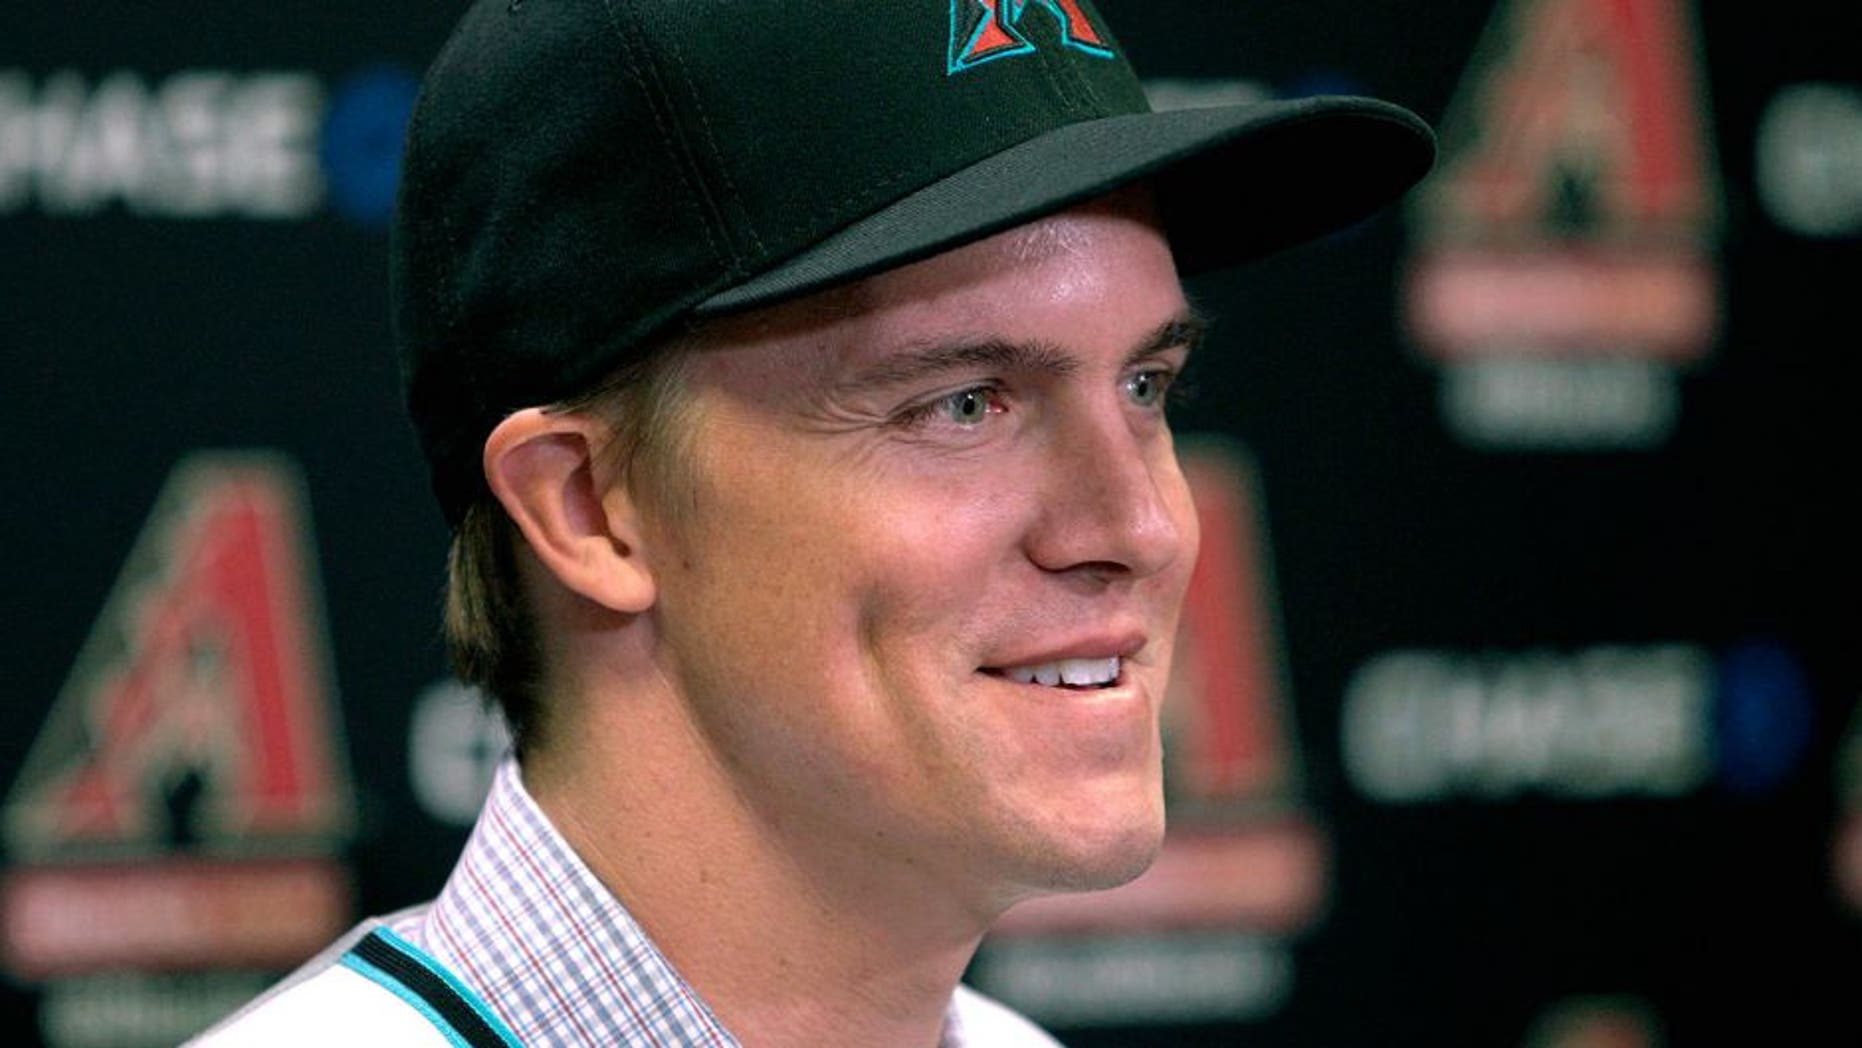 PHOENIX, AZ - DECEMBER 11: Free agent aquisition Zack Greinke of the Arizona Diamondbacks speaks to the media during a press conference at Chase Field on December 11, 2015 in Phoenix, Arizona. (Photo by Ralph Freso/Getty Images)